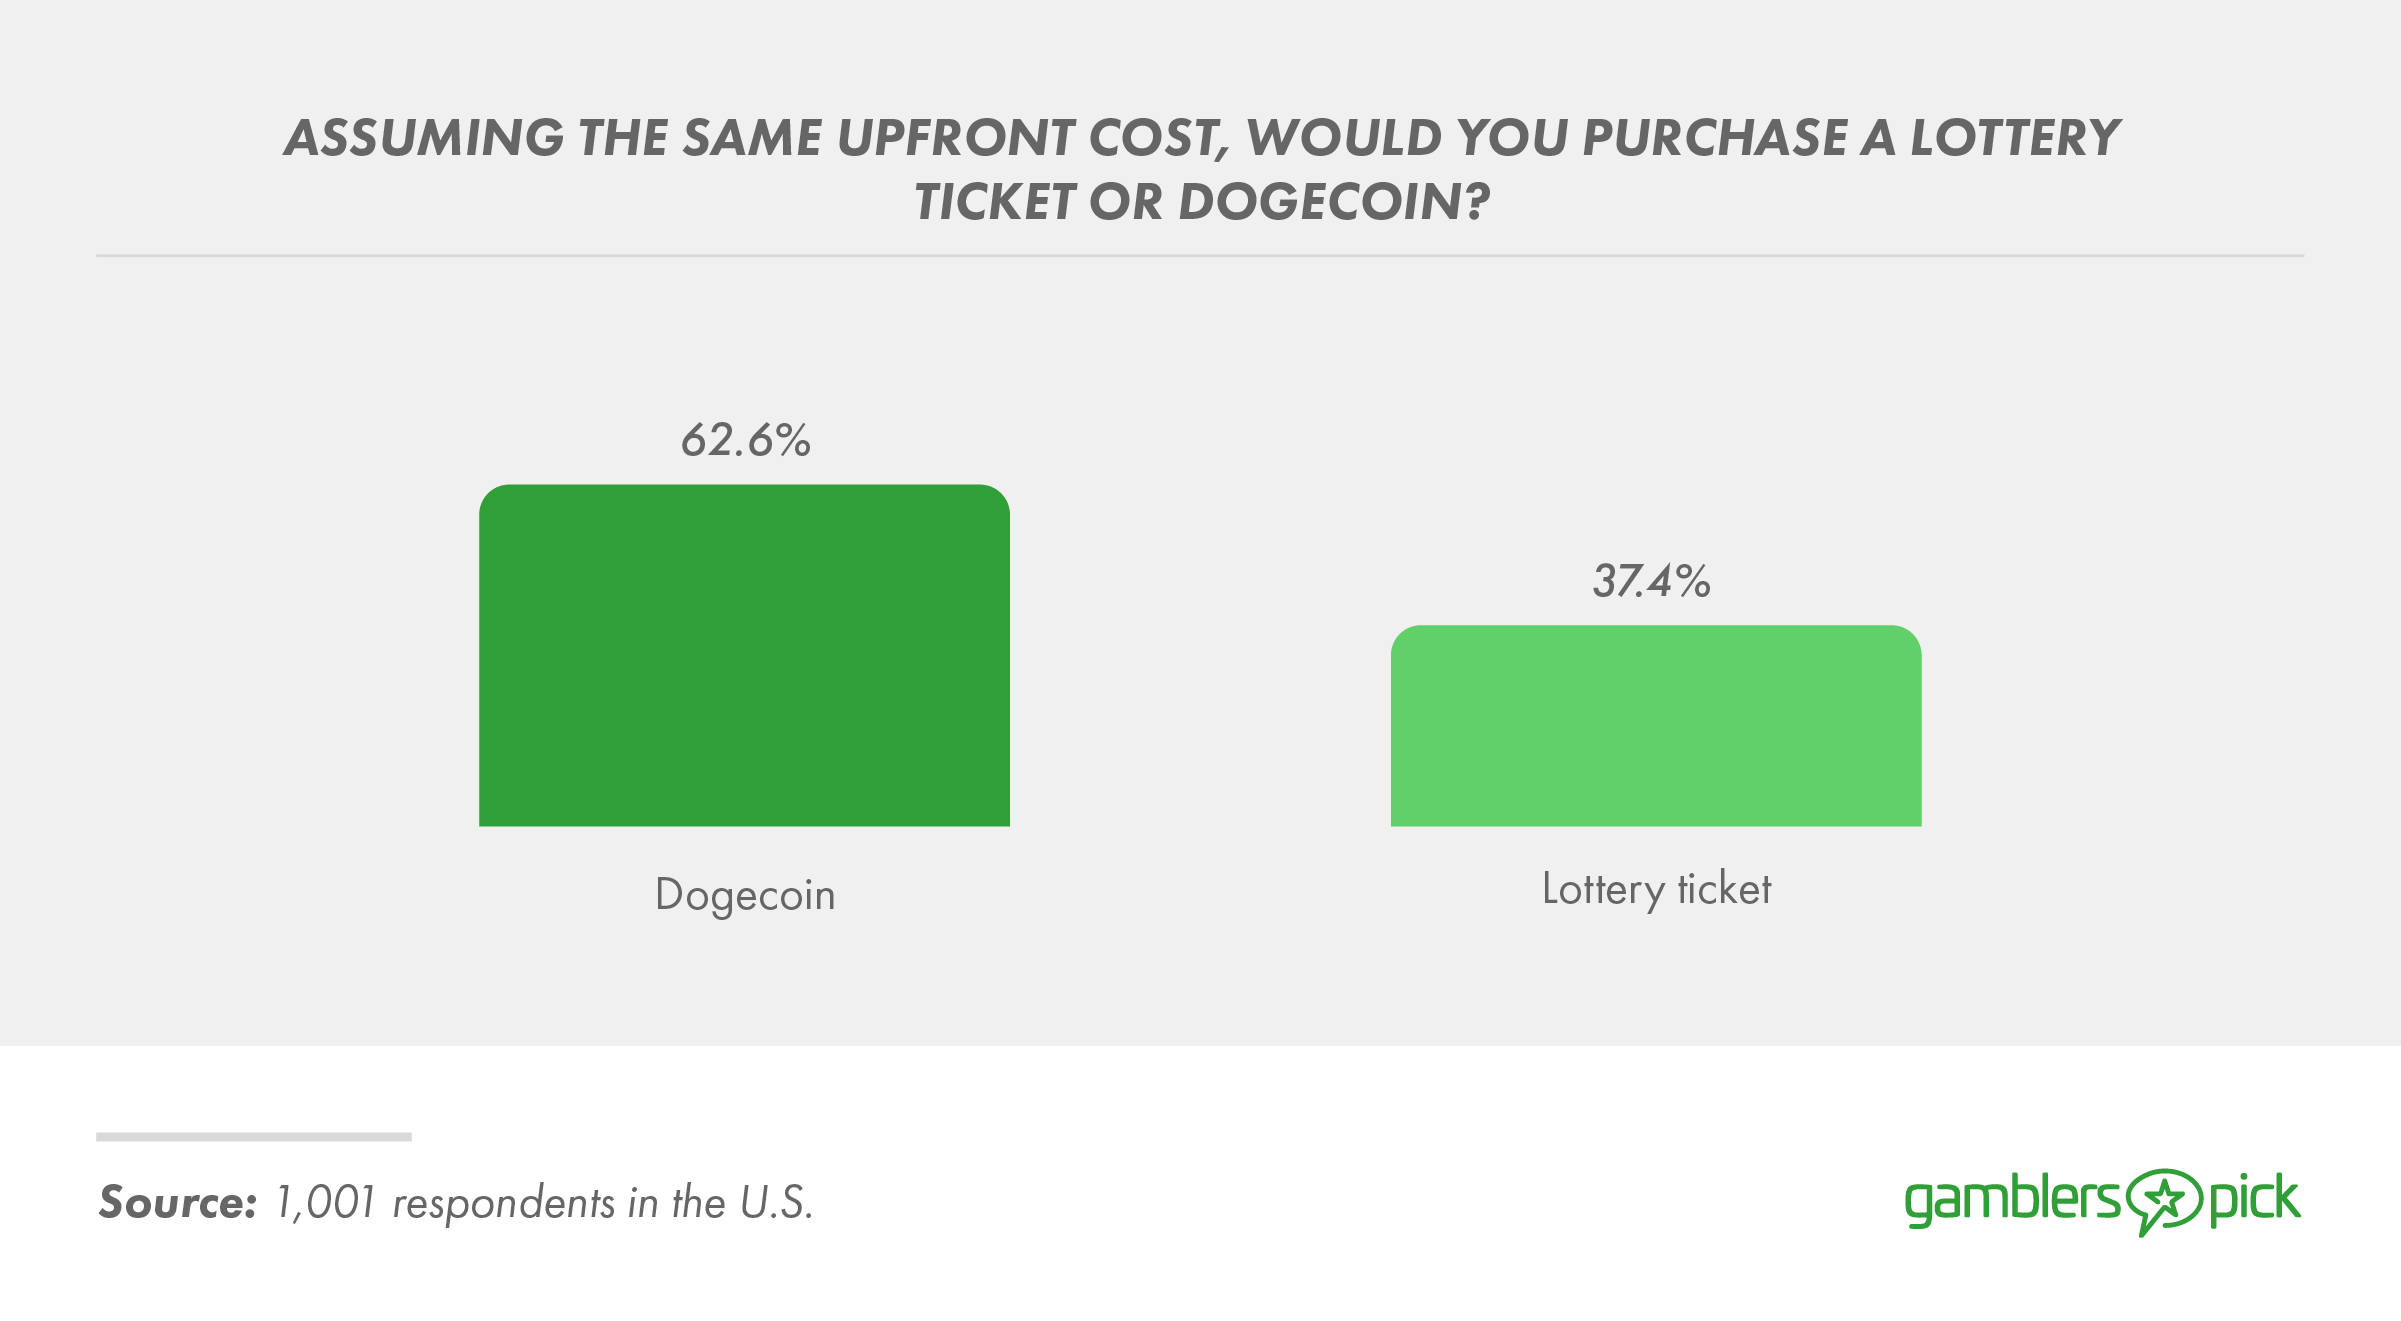 More people would purchase Dogecoin over a lottery ticket.